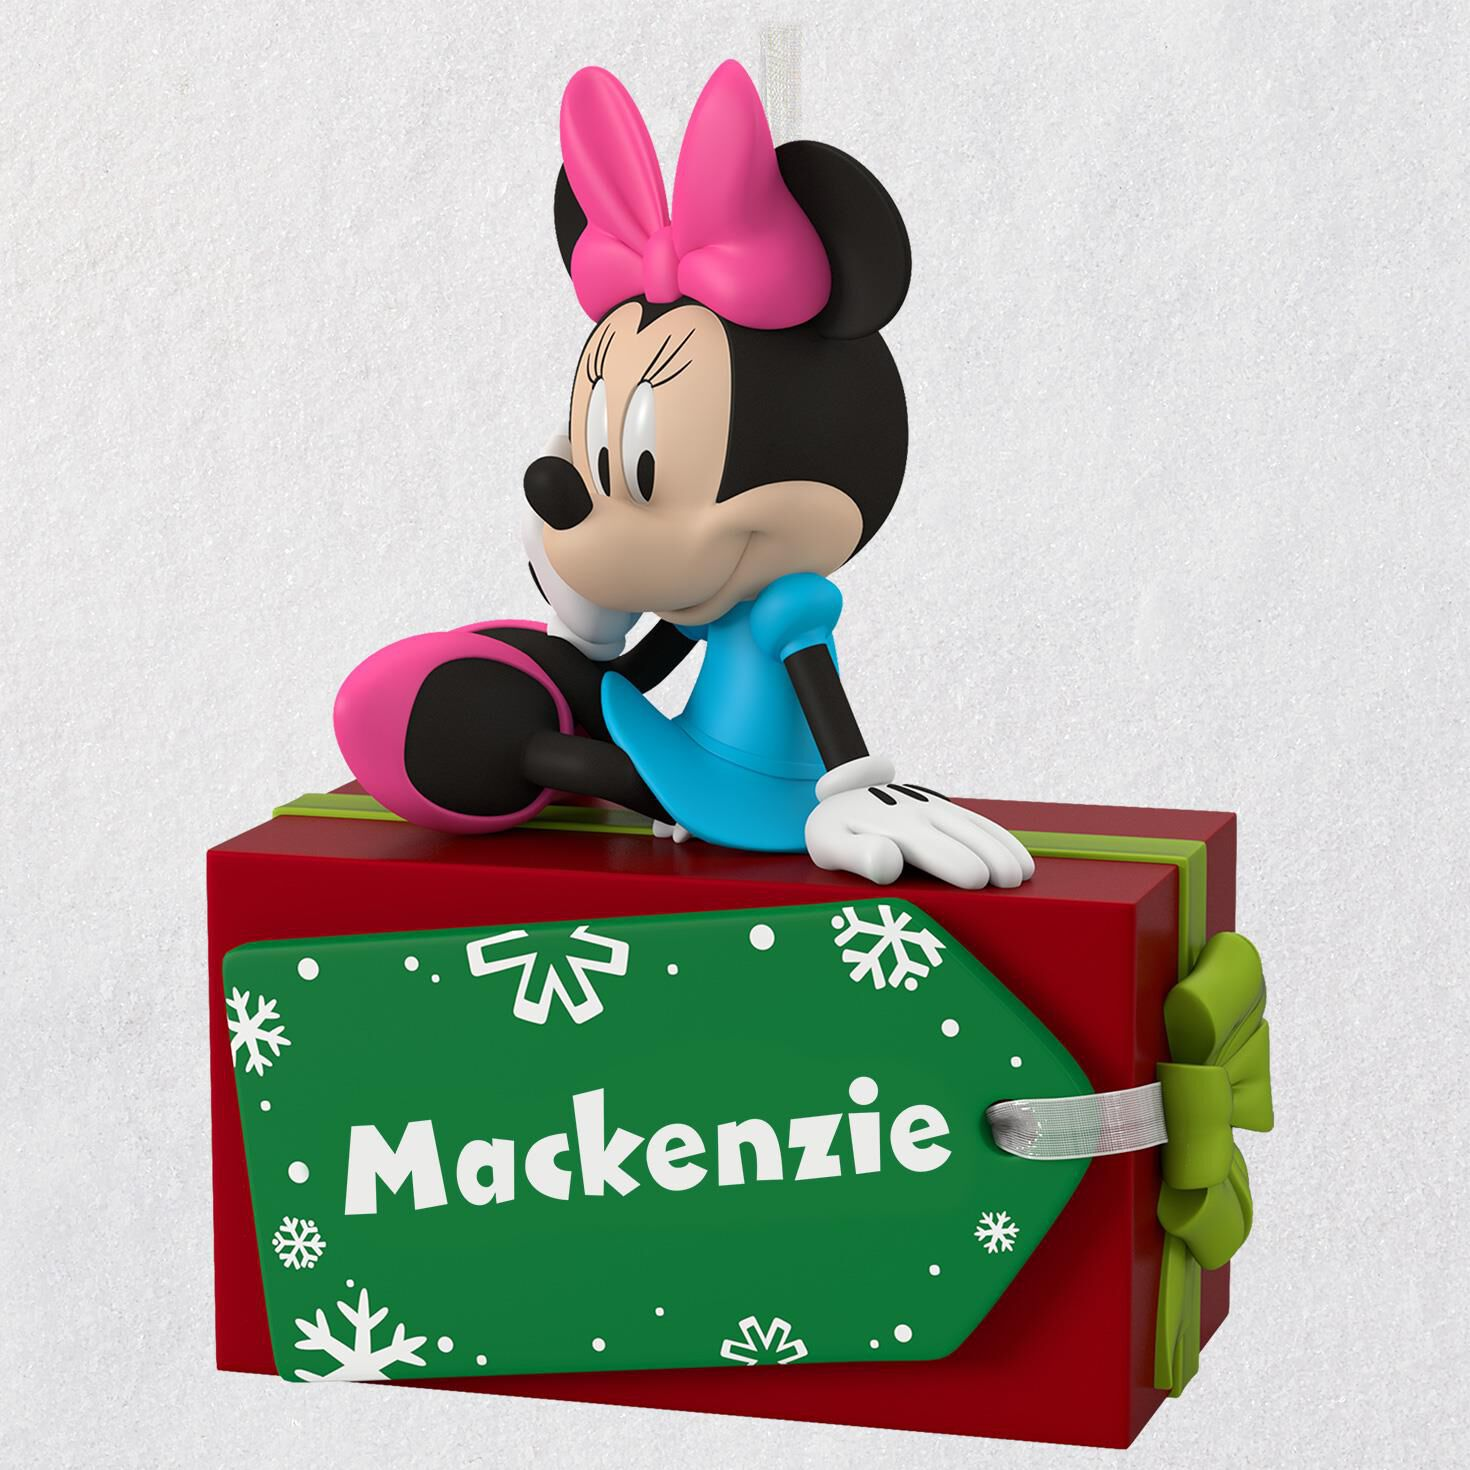 disney minnie mouse christmas present personalized ornament personalized ornaments hallmark